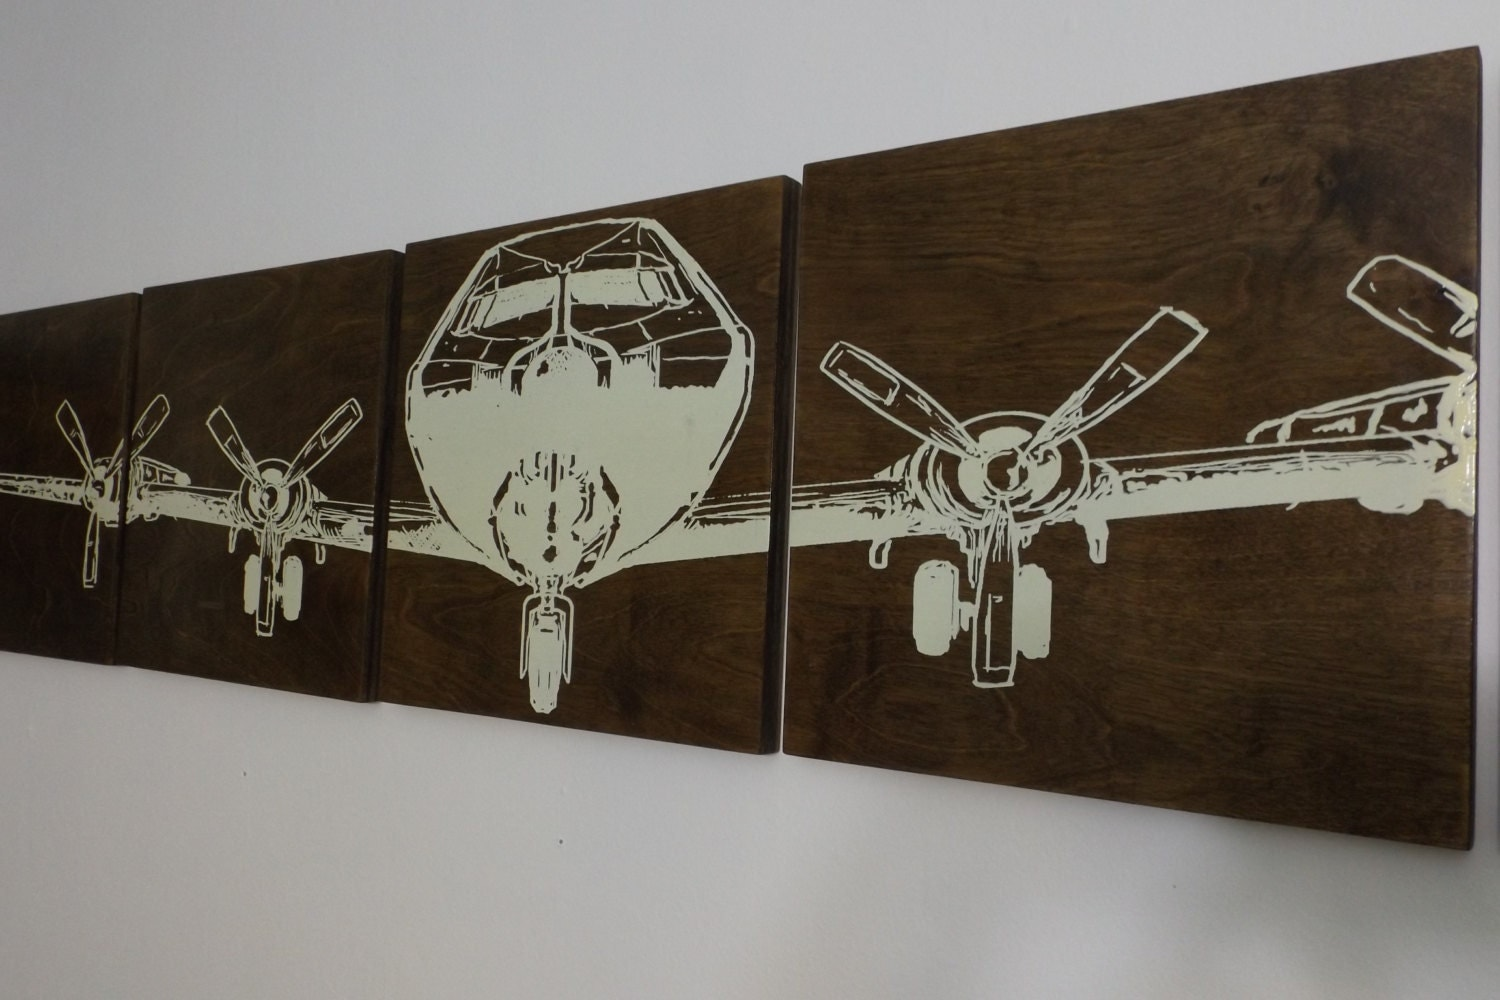 Vintage Plane Wall Decor : Airplane wall art ww wood vintage